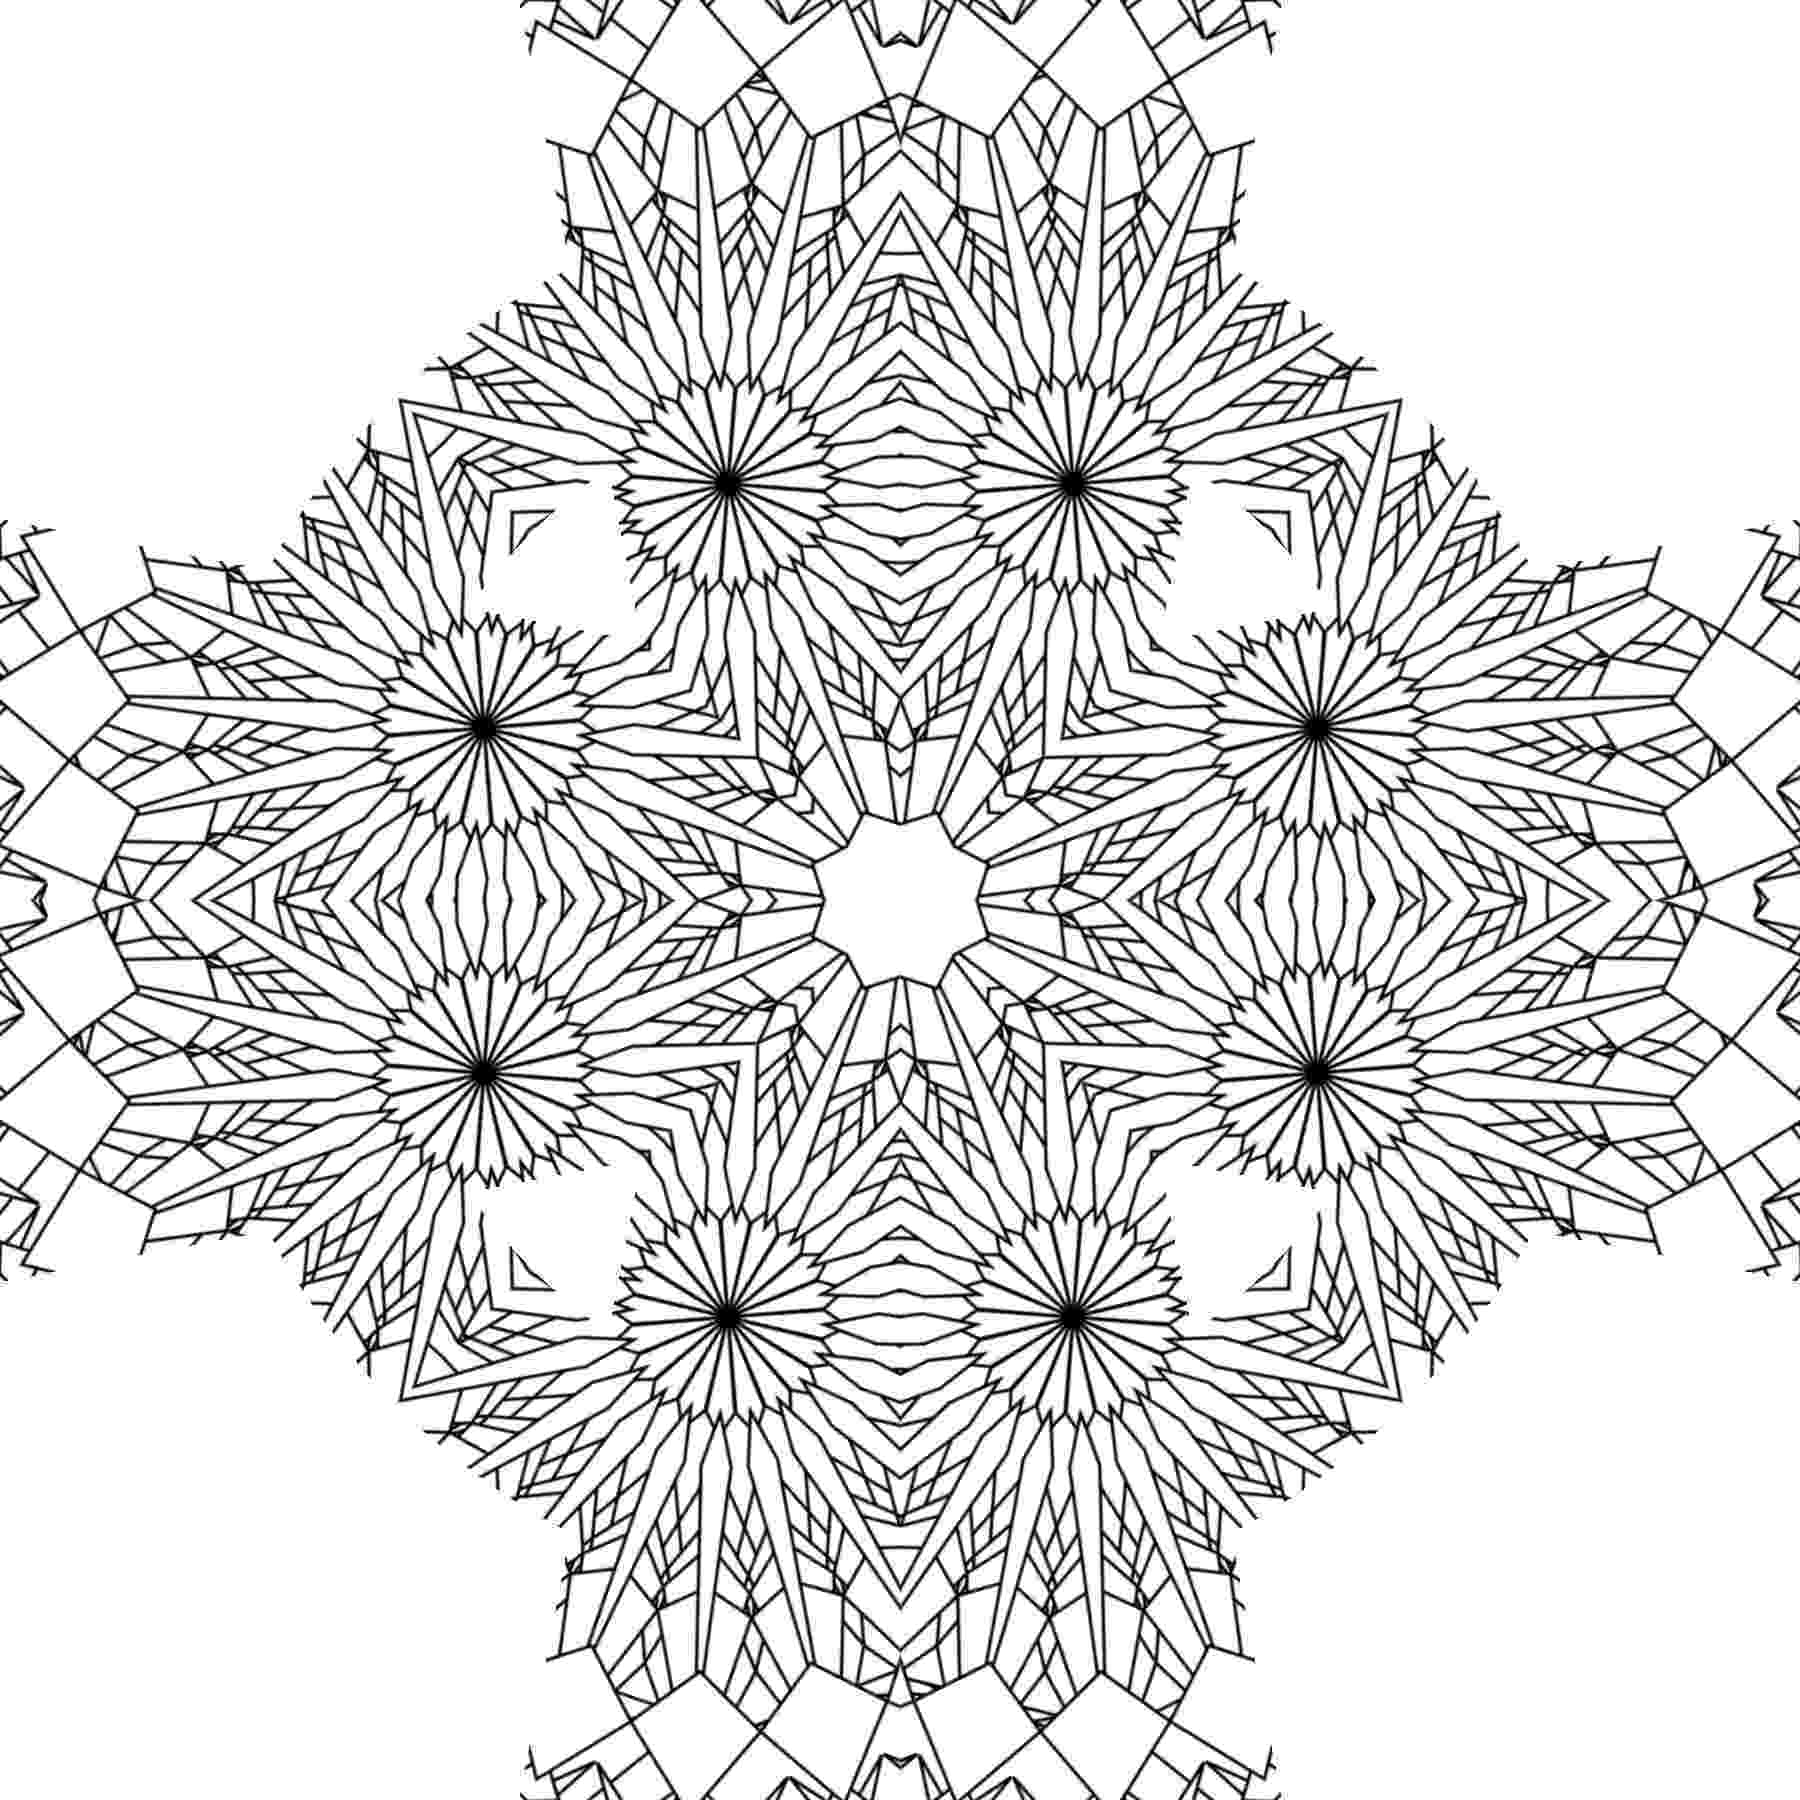 coloring pages for adults patterns free printable geometric coloring pages for kids patterns adults pages for coloring